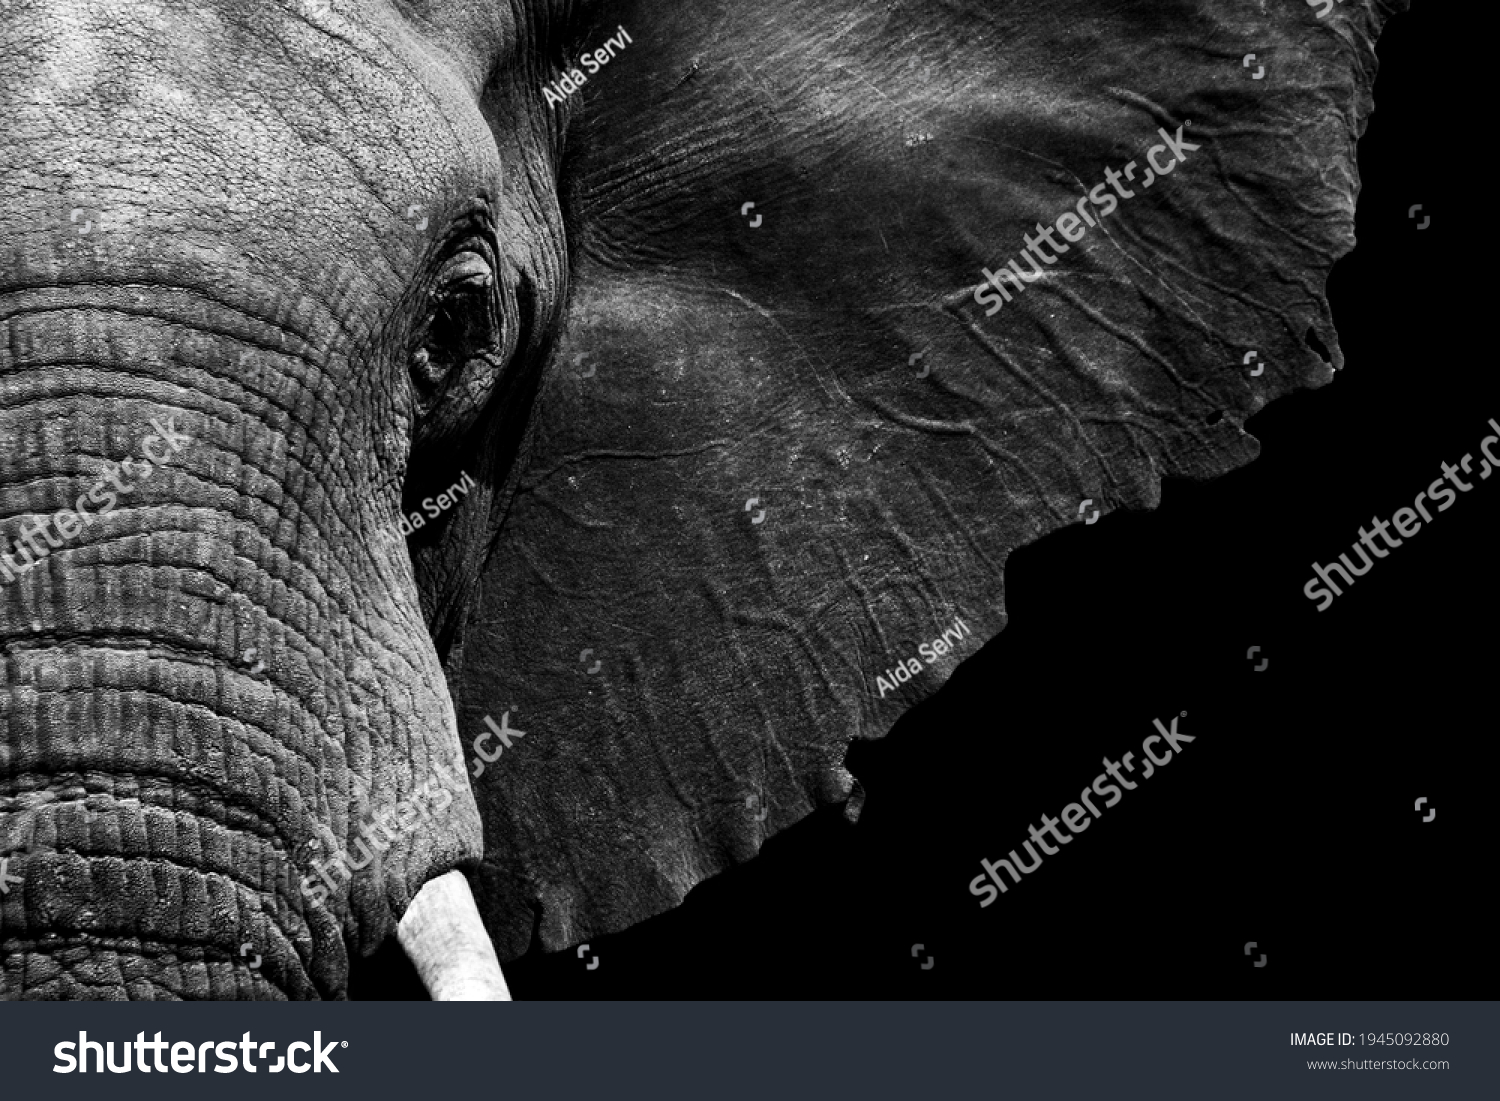 African elephant close-up in textured black and white processed #1945092880